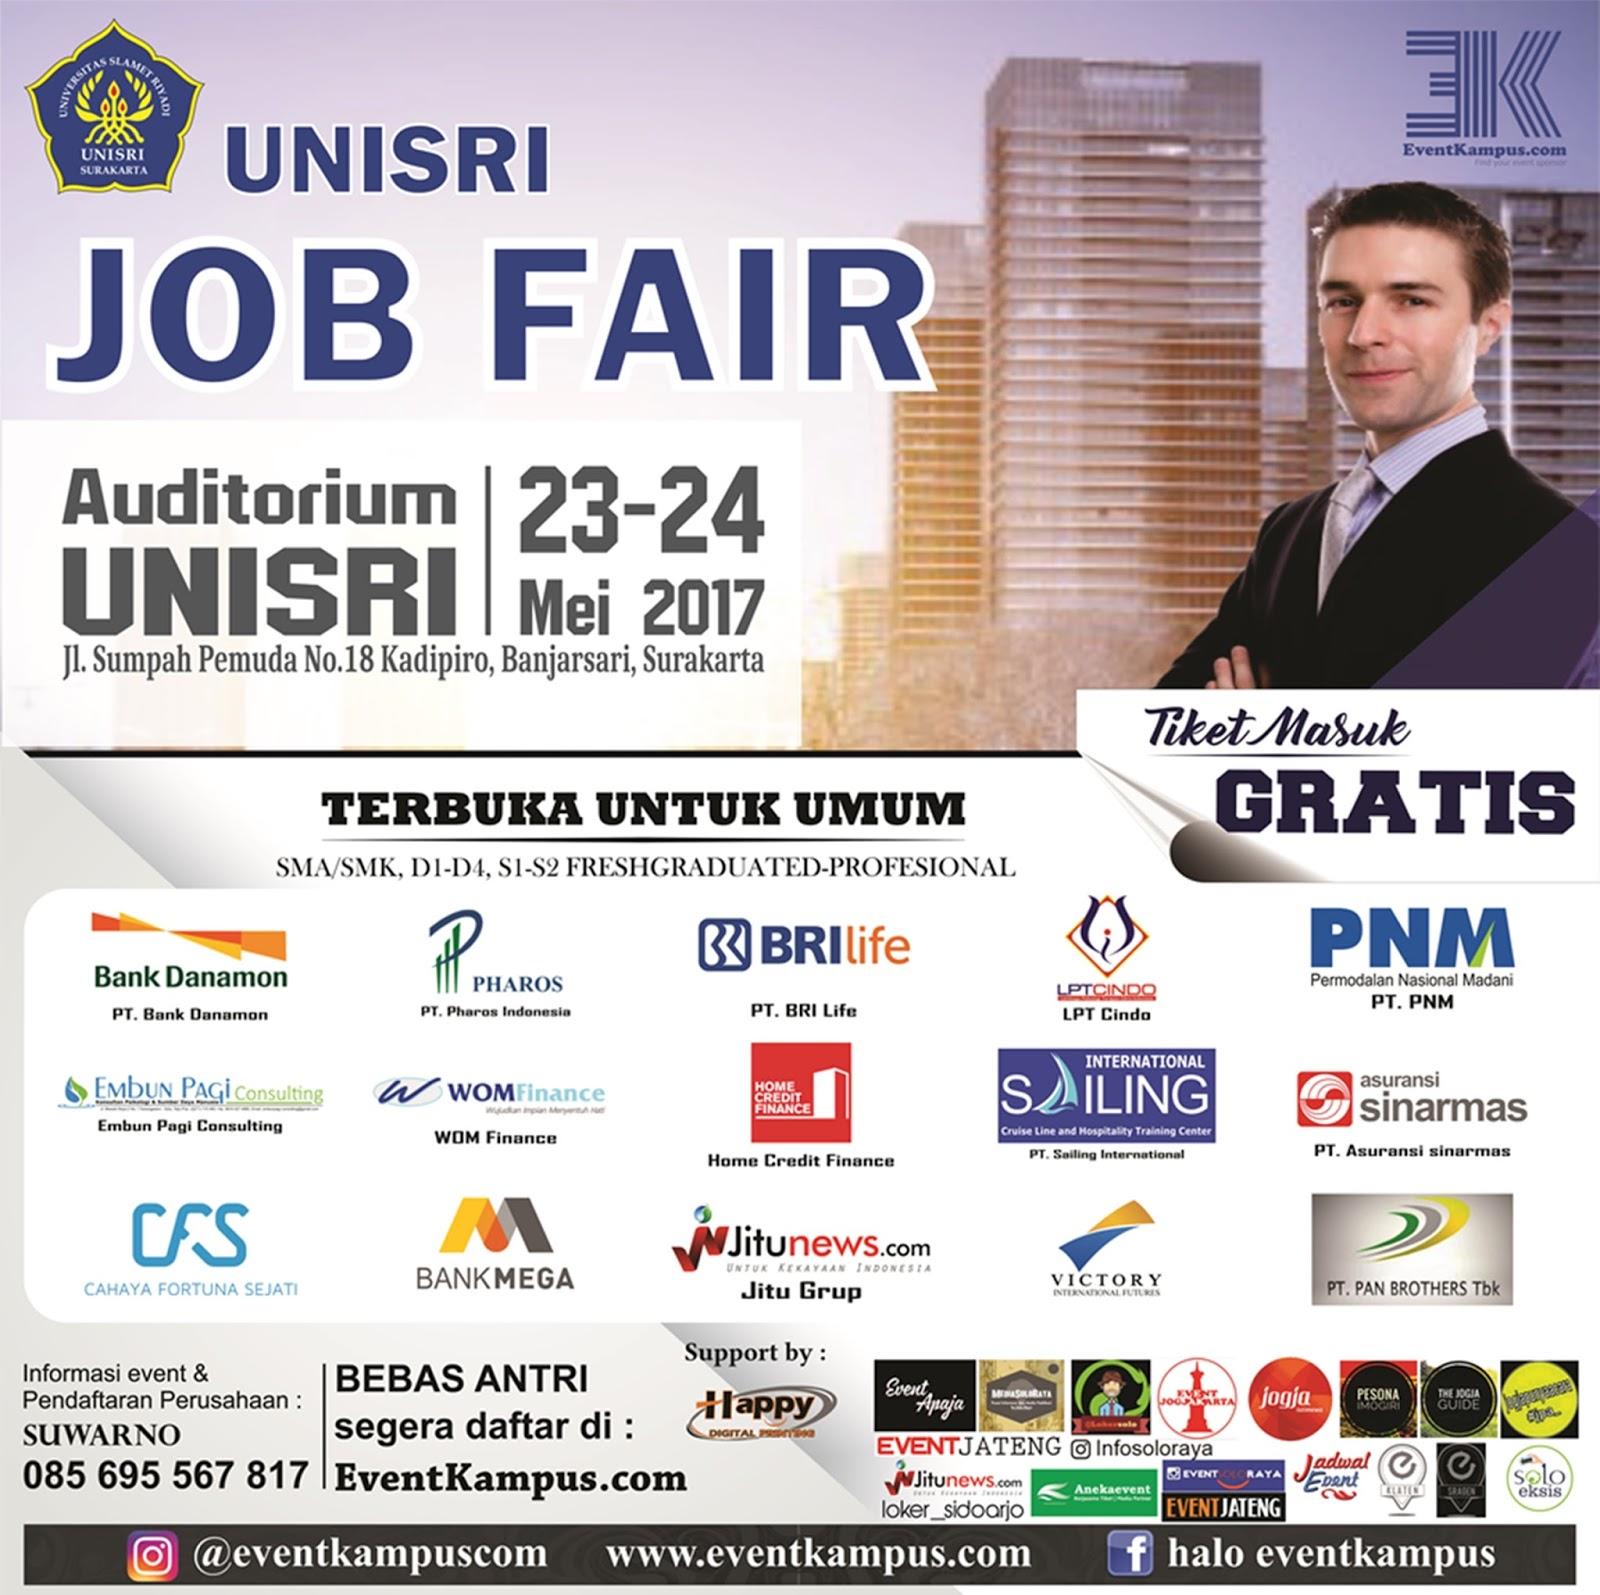 Unisri Job Fair